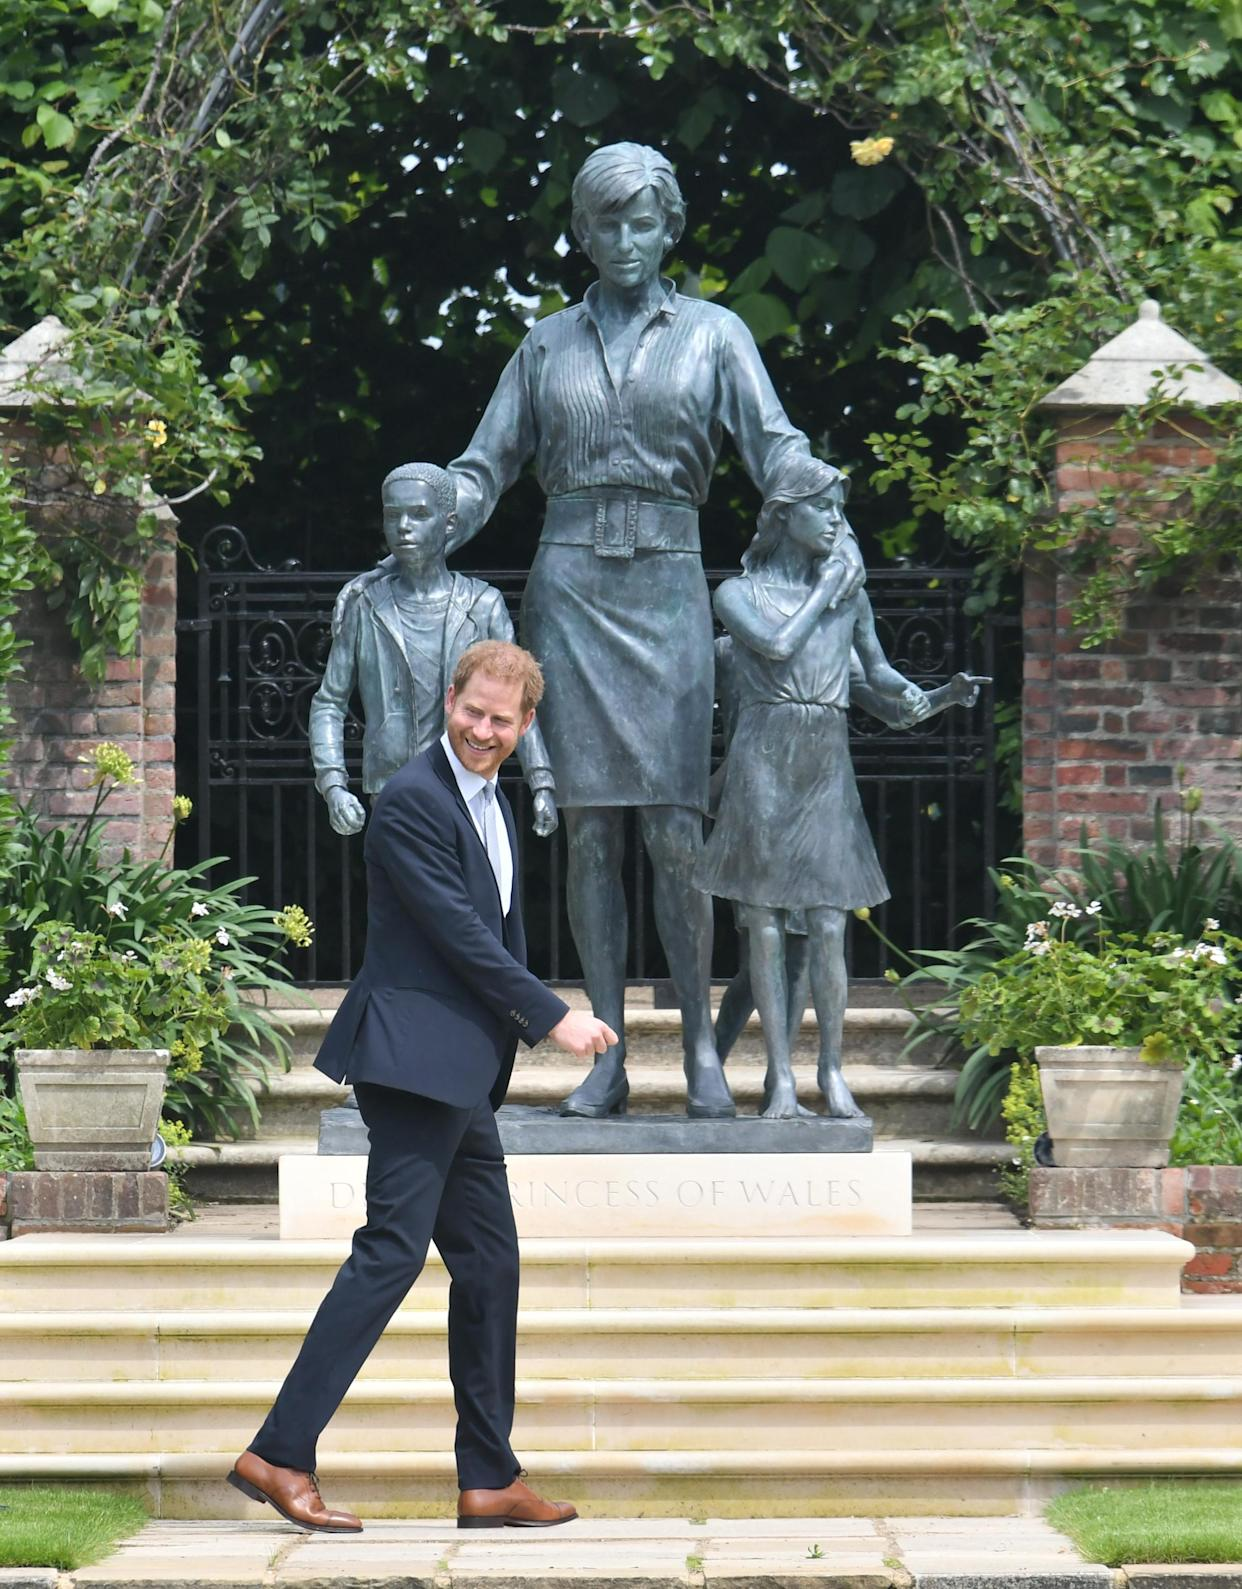 The Duke of Sussex after the unveiling a statue commissioned of his mother Diana, Princess of Wales, in the Sunken Garden at Kensington Palace, London, on what would have been her 60th birthday. Picture date: Thursday July 1, 2021.